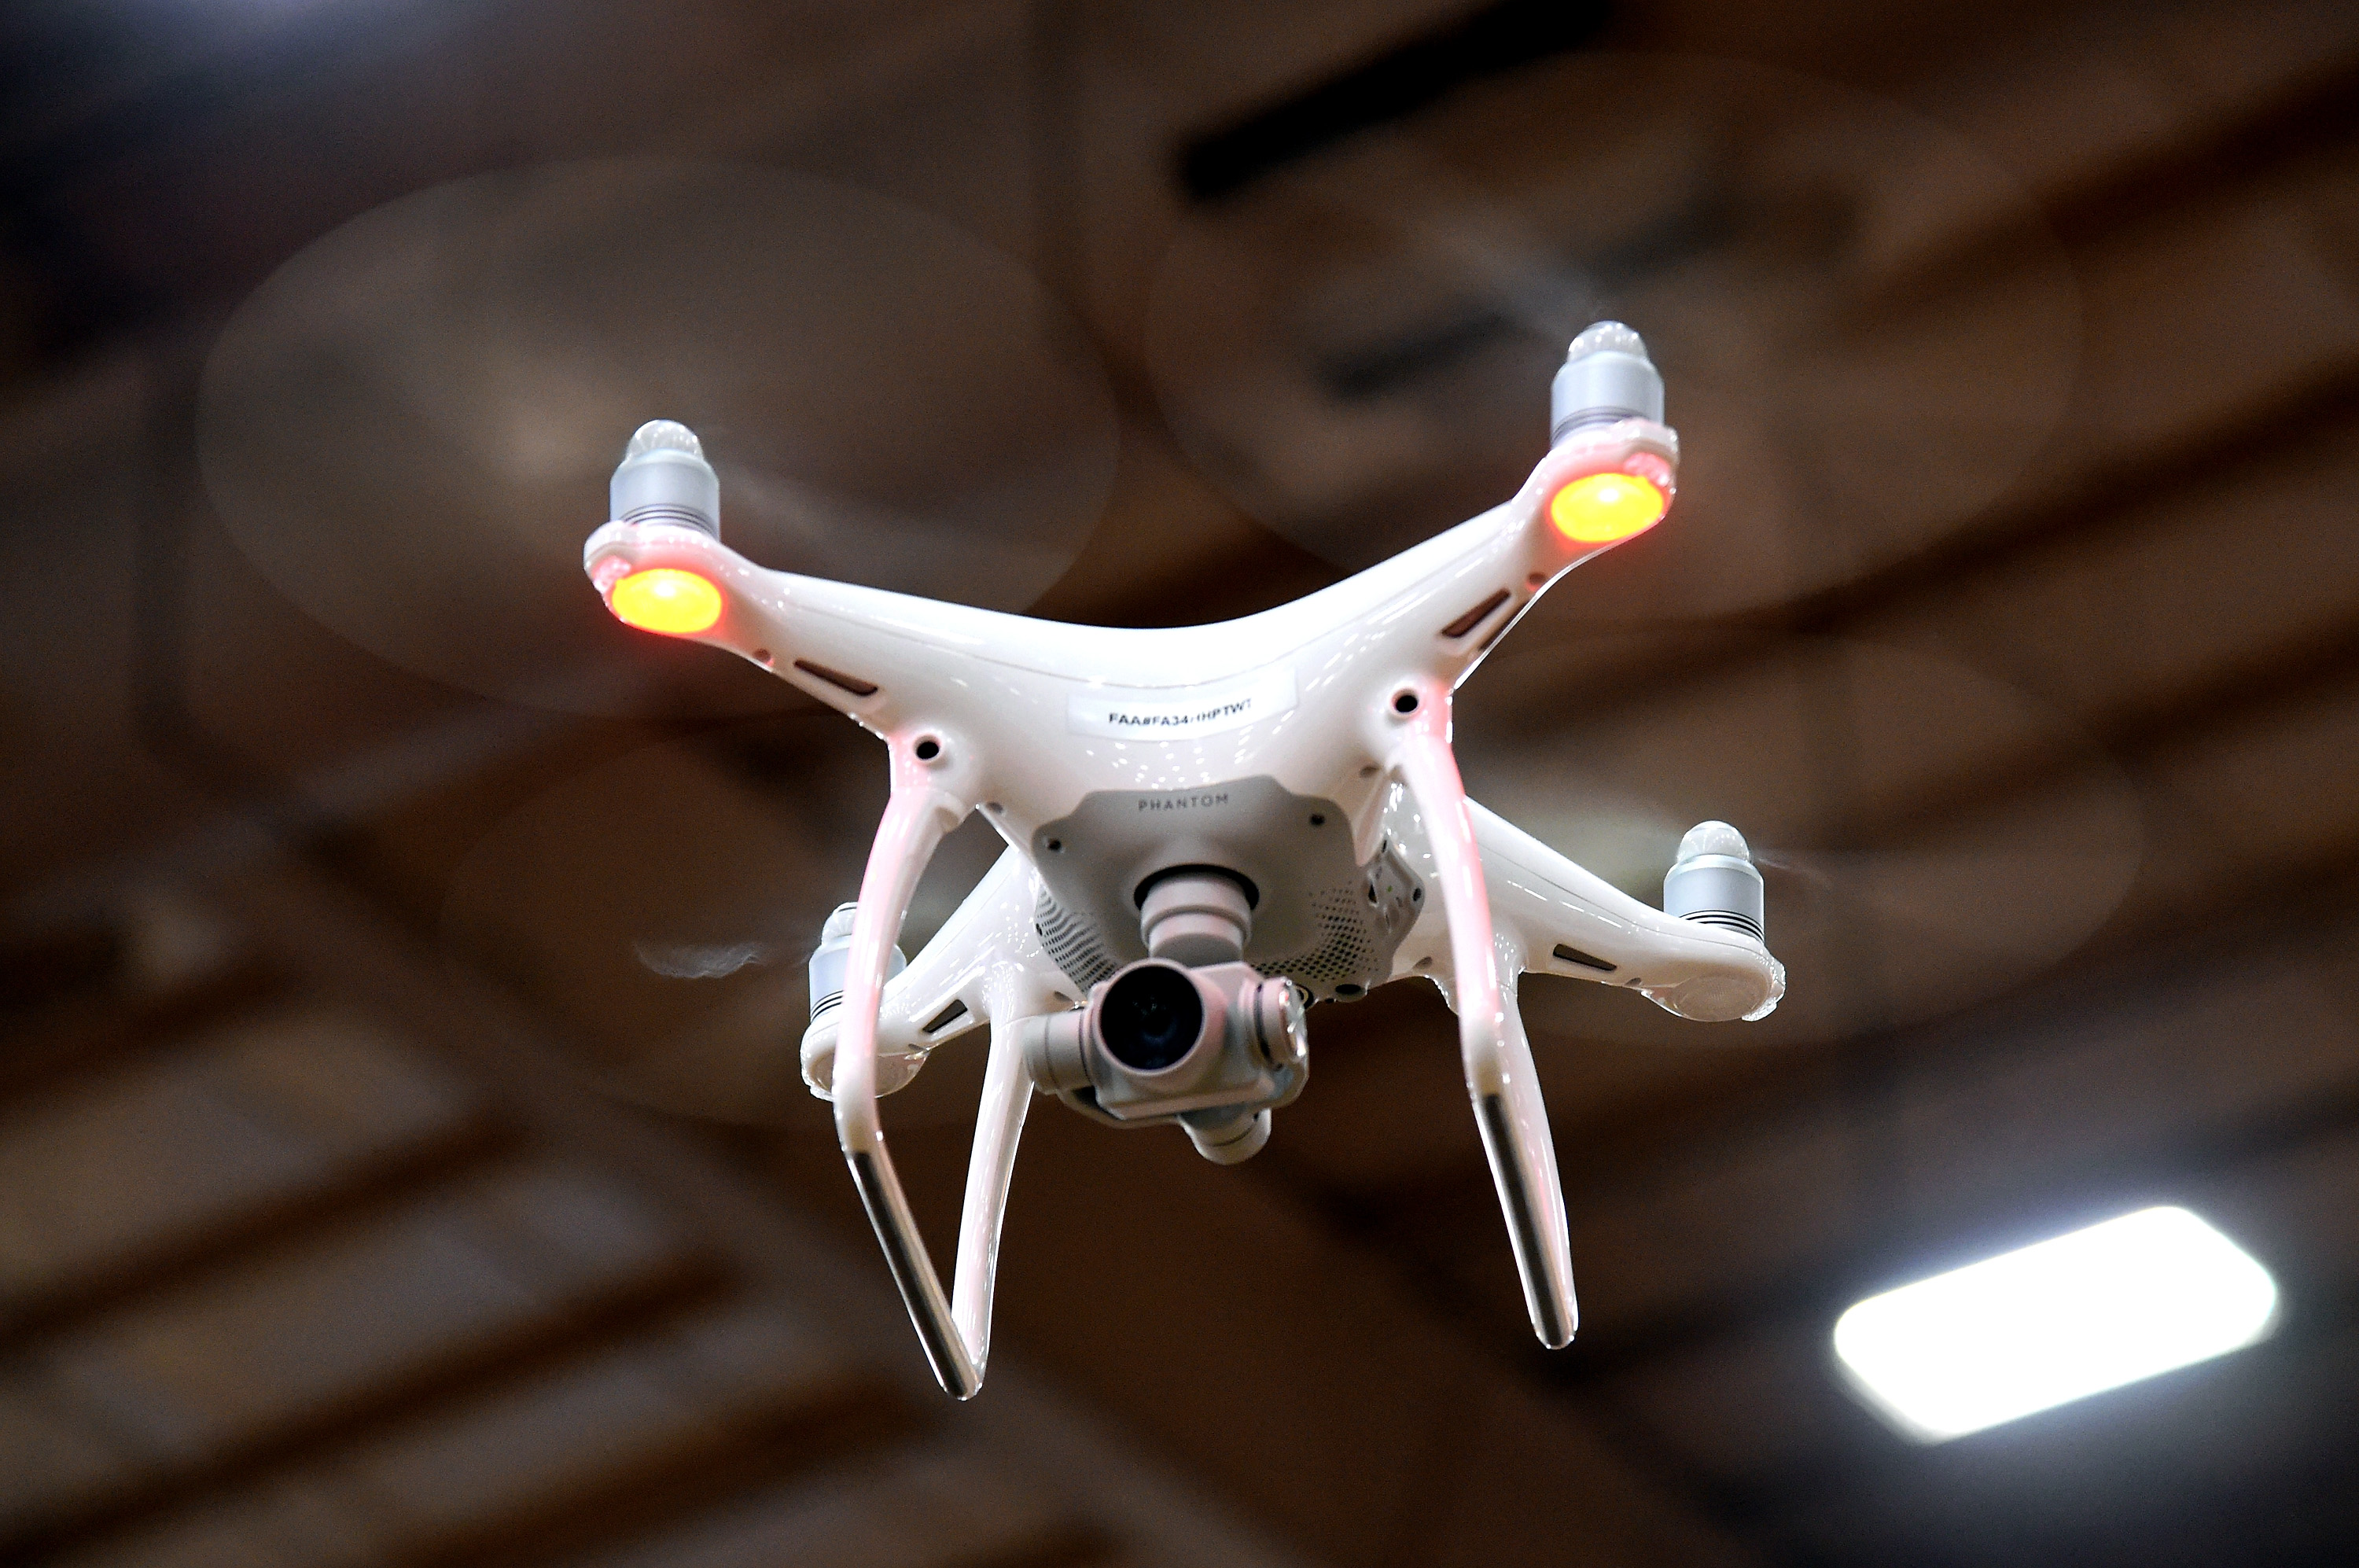 DJI partners with AMA to offer drone safety and training program